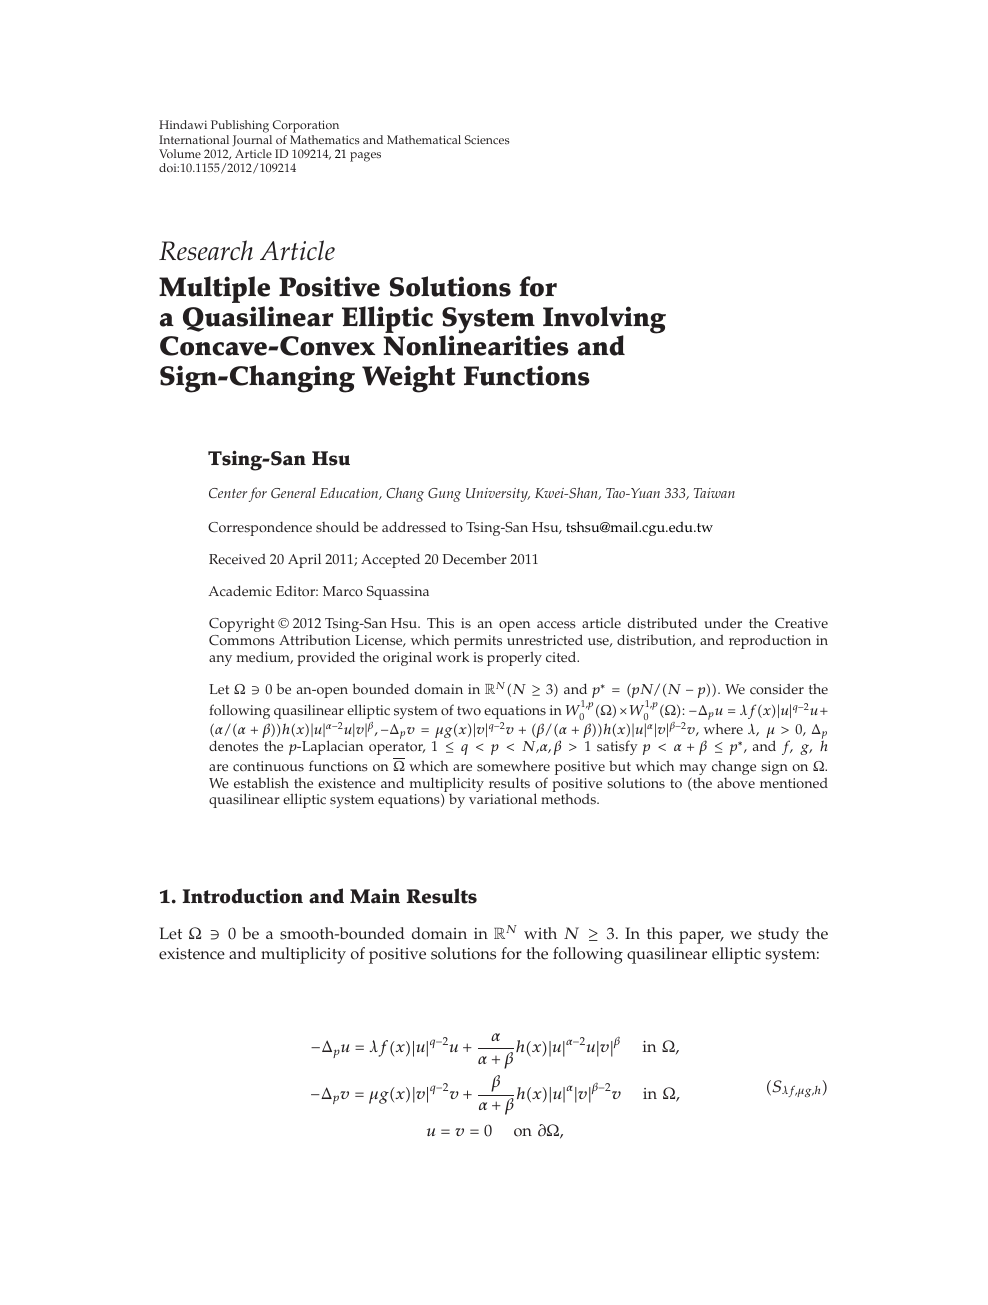 Existence of radial solutions for quasilinear elliptic equations with singular nonlinearities